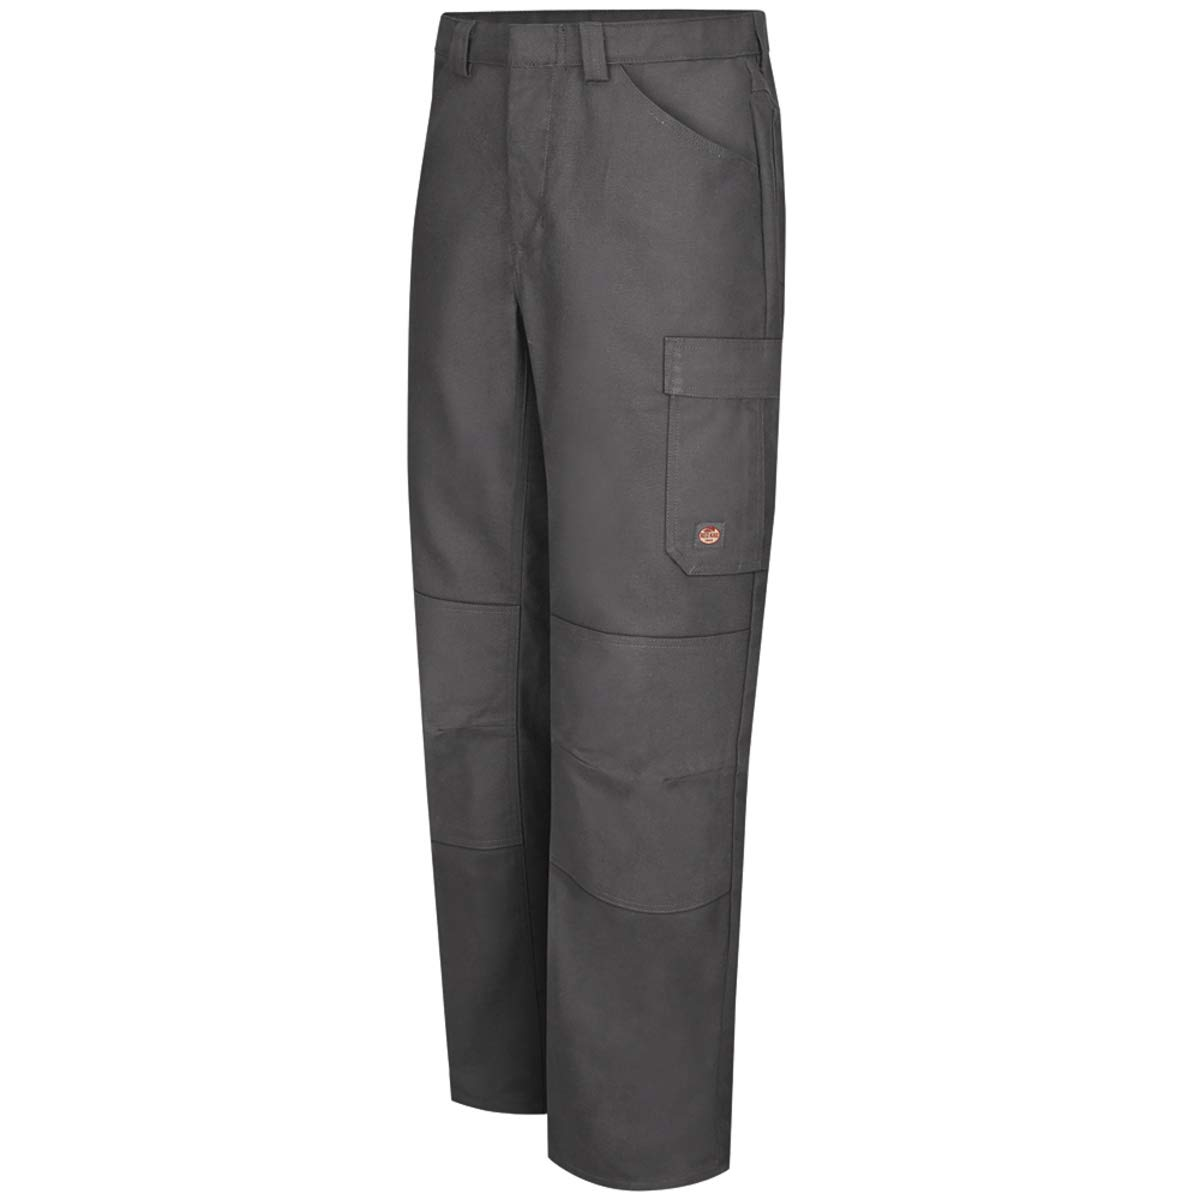 Red Kap 40'' X 32'' Charcoal 8 Ounce Polyester/Cotton/Spandex Pants With Button Closure